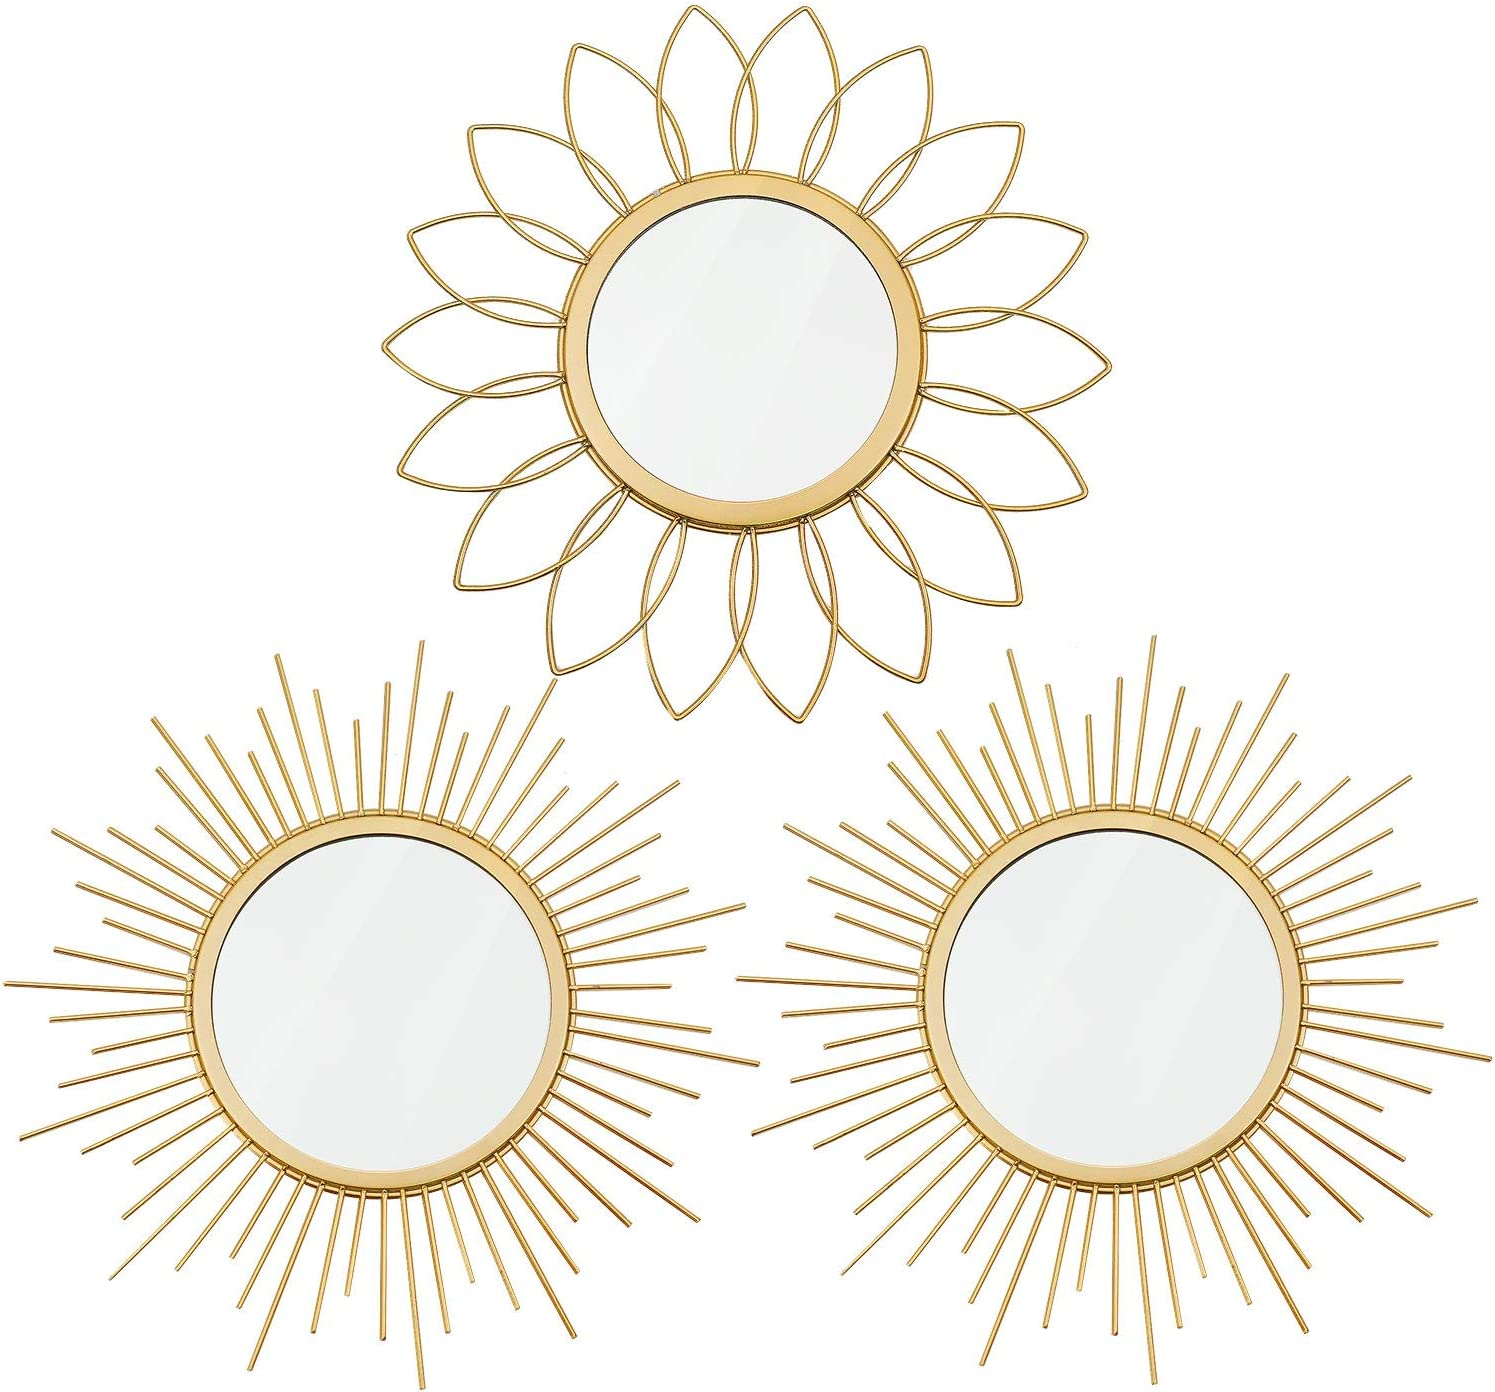 3 Tulsa Mall Pack Gold Mirrors for Home Dé Ranking TOP17 Wall Metal Sunburst